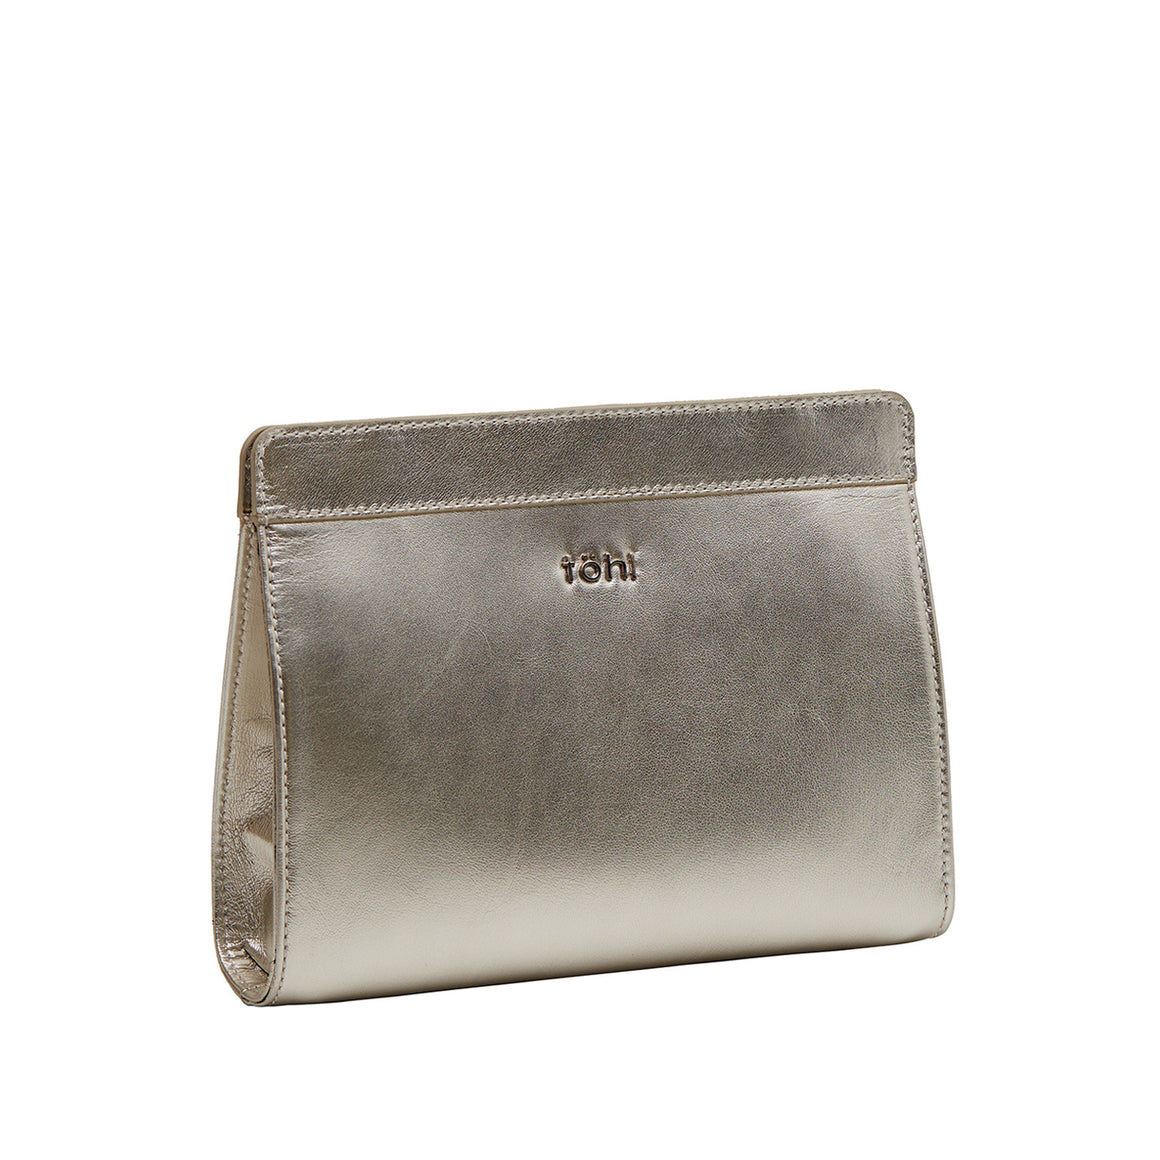 CH 0004 - TOHL CHARLTON WOMEN'S GRIP CLUTCH - SILVER